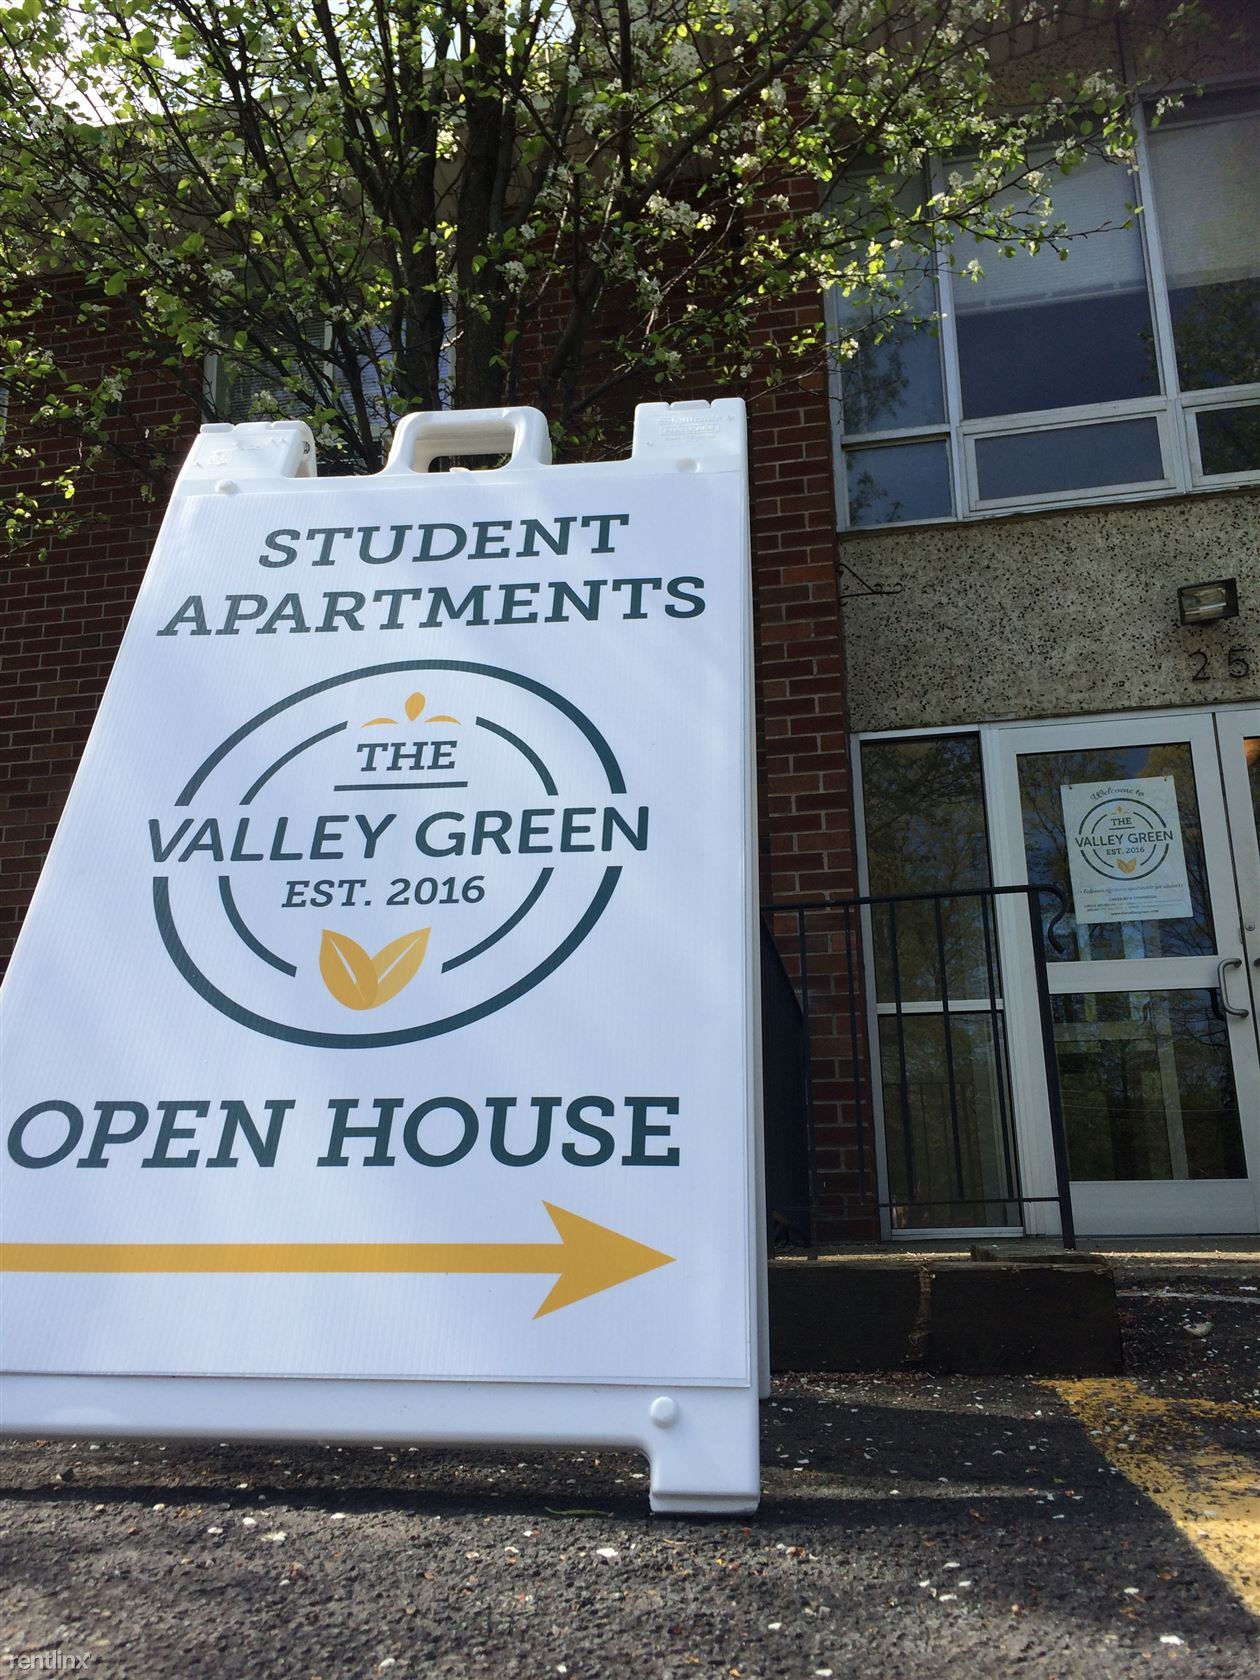 The Valley Green Student Apartments